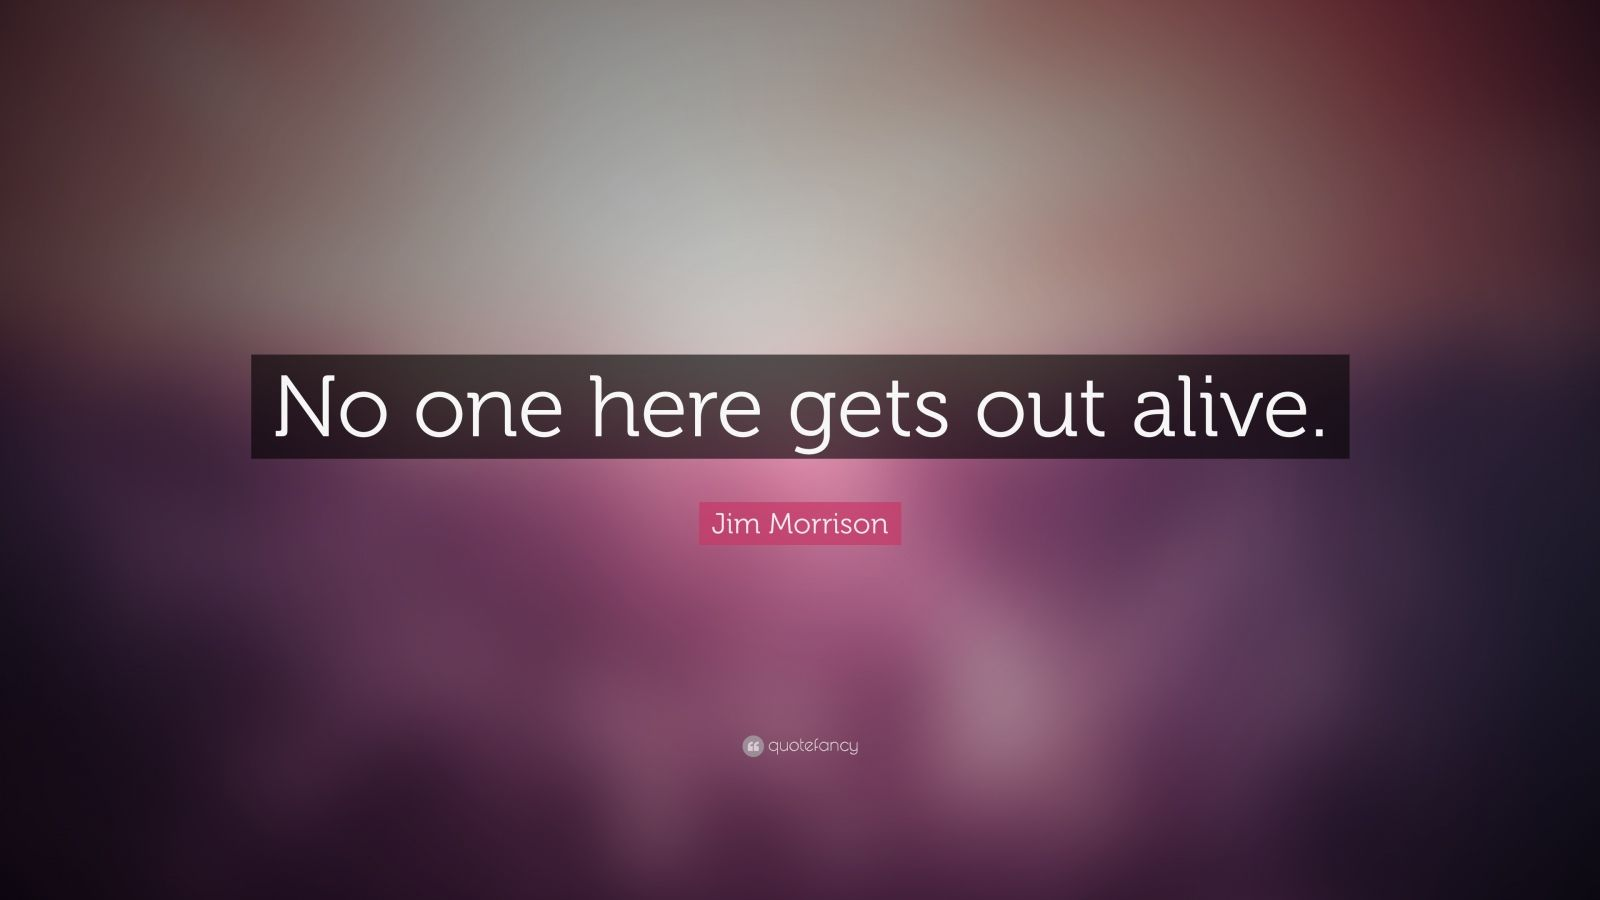 Theodore Roosevelt Quotes Wallpaper Jim Morrison Quote No One Here Gets Out Alive 15